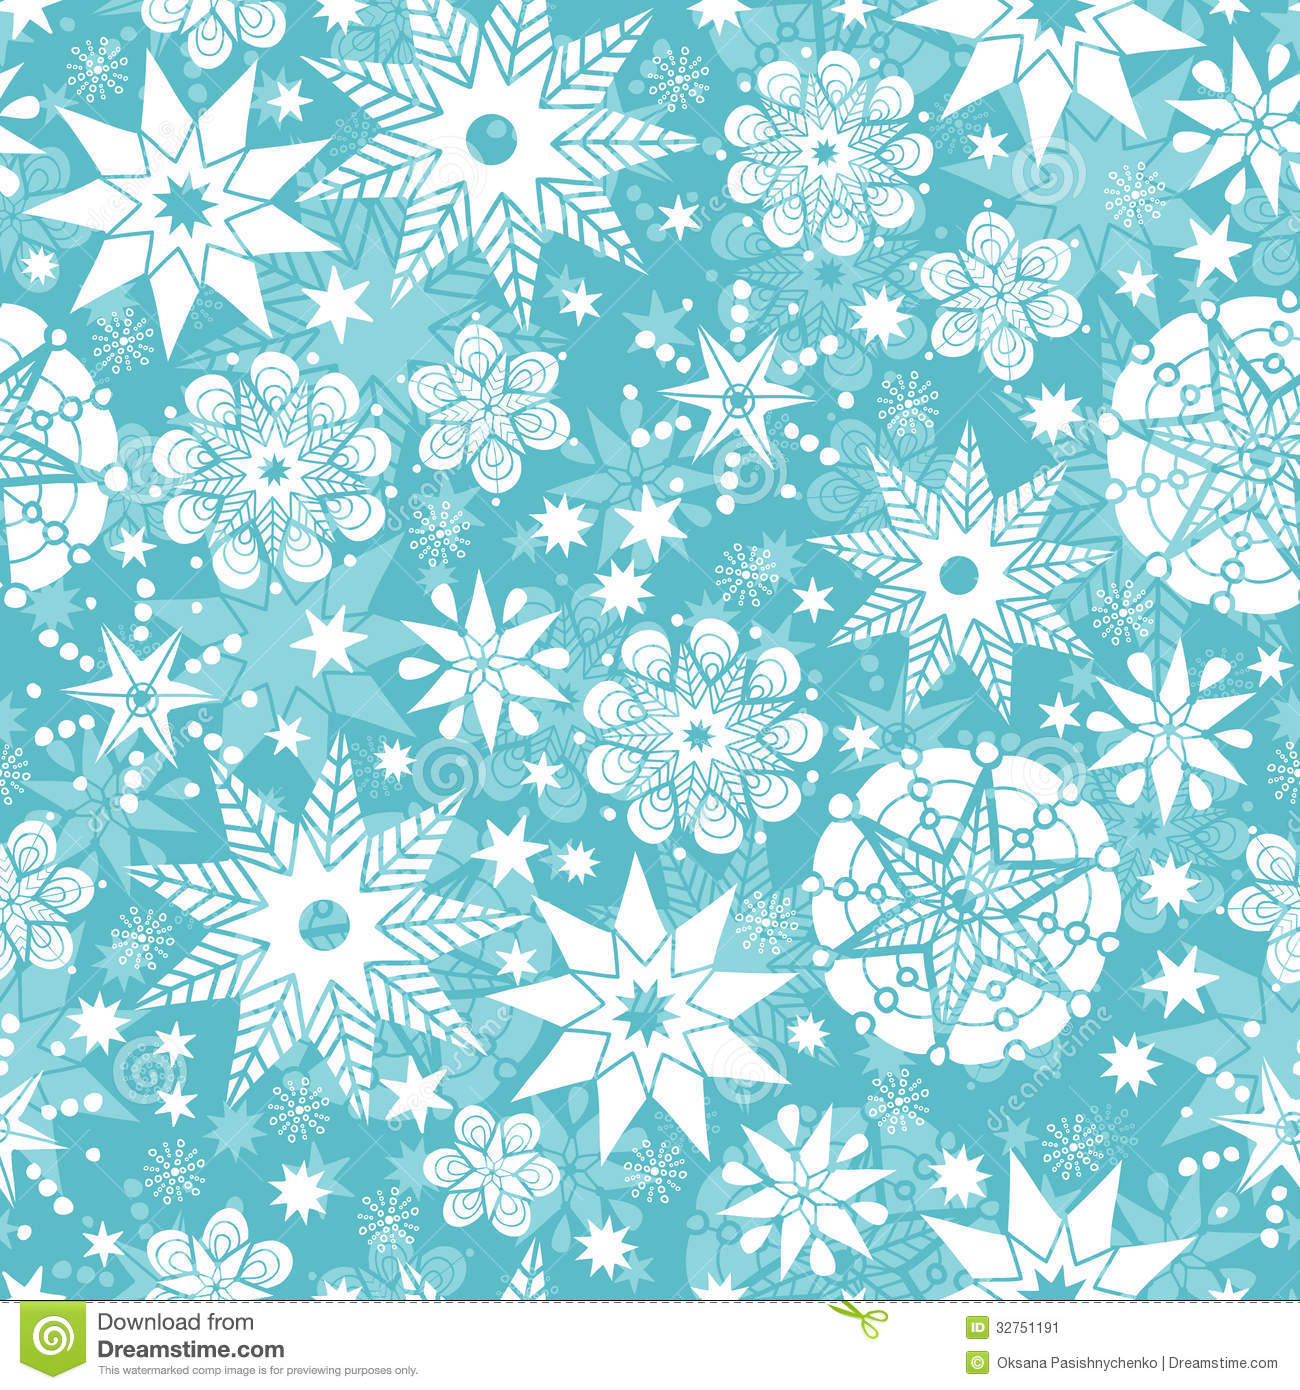 Decorative Snowflake Frost Seamless Pattern Stock Image.